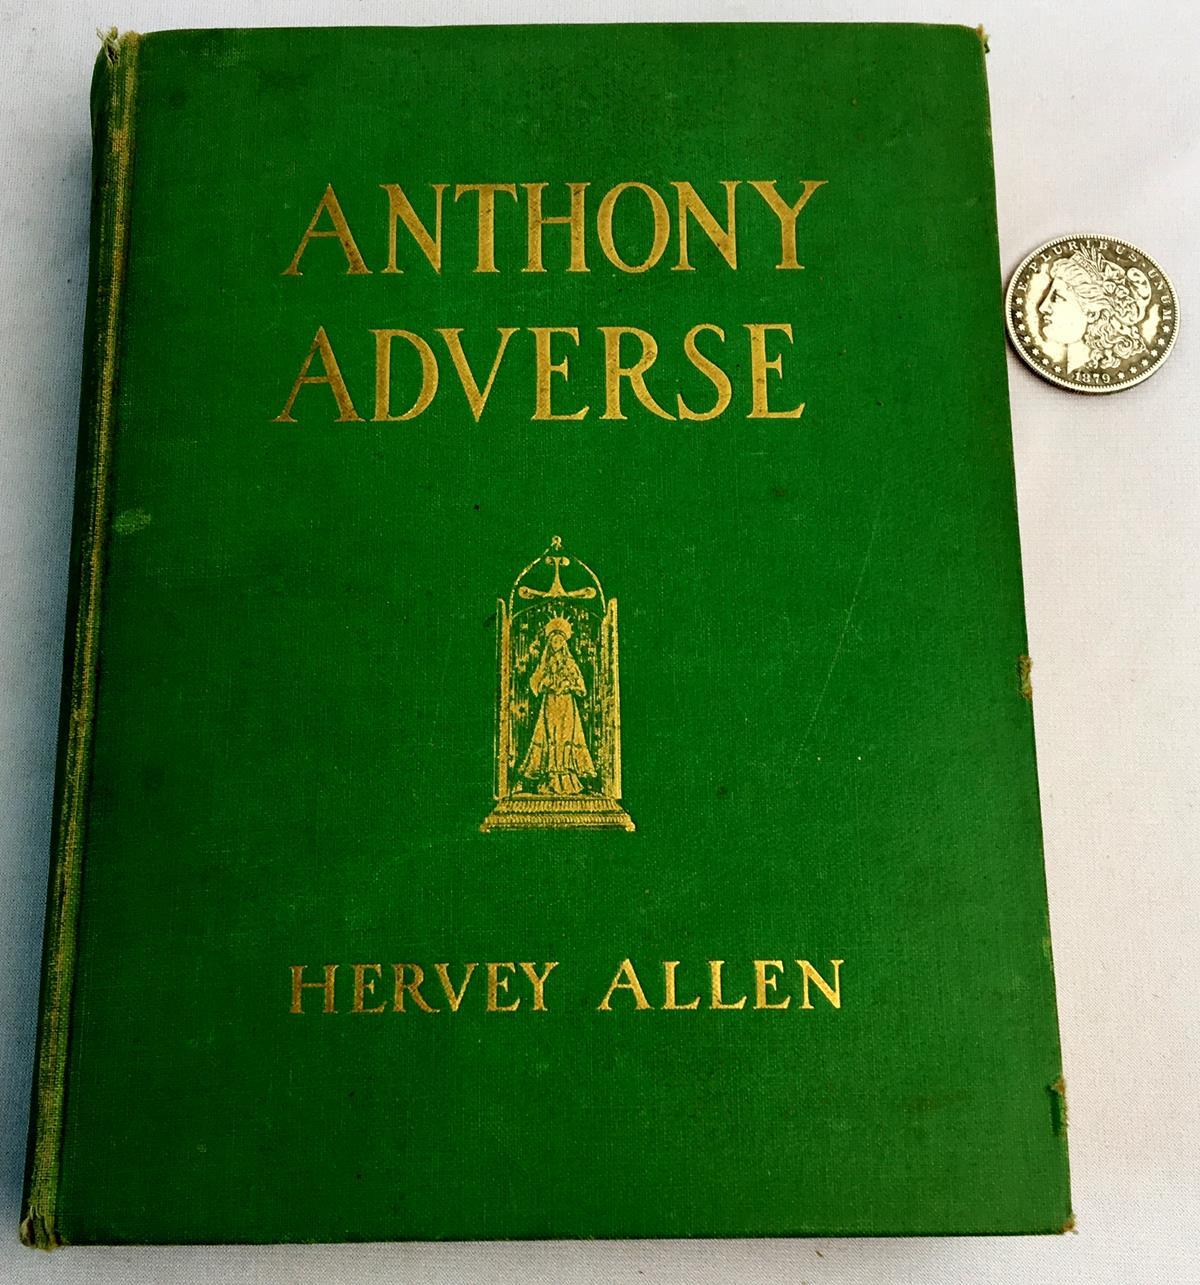 1934 Anthony Adverse by Hervey Allen Illustrated by N.C. Wyeth FIRST EDITION